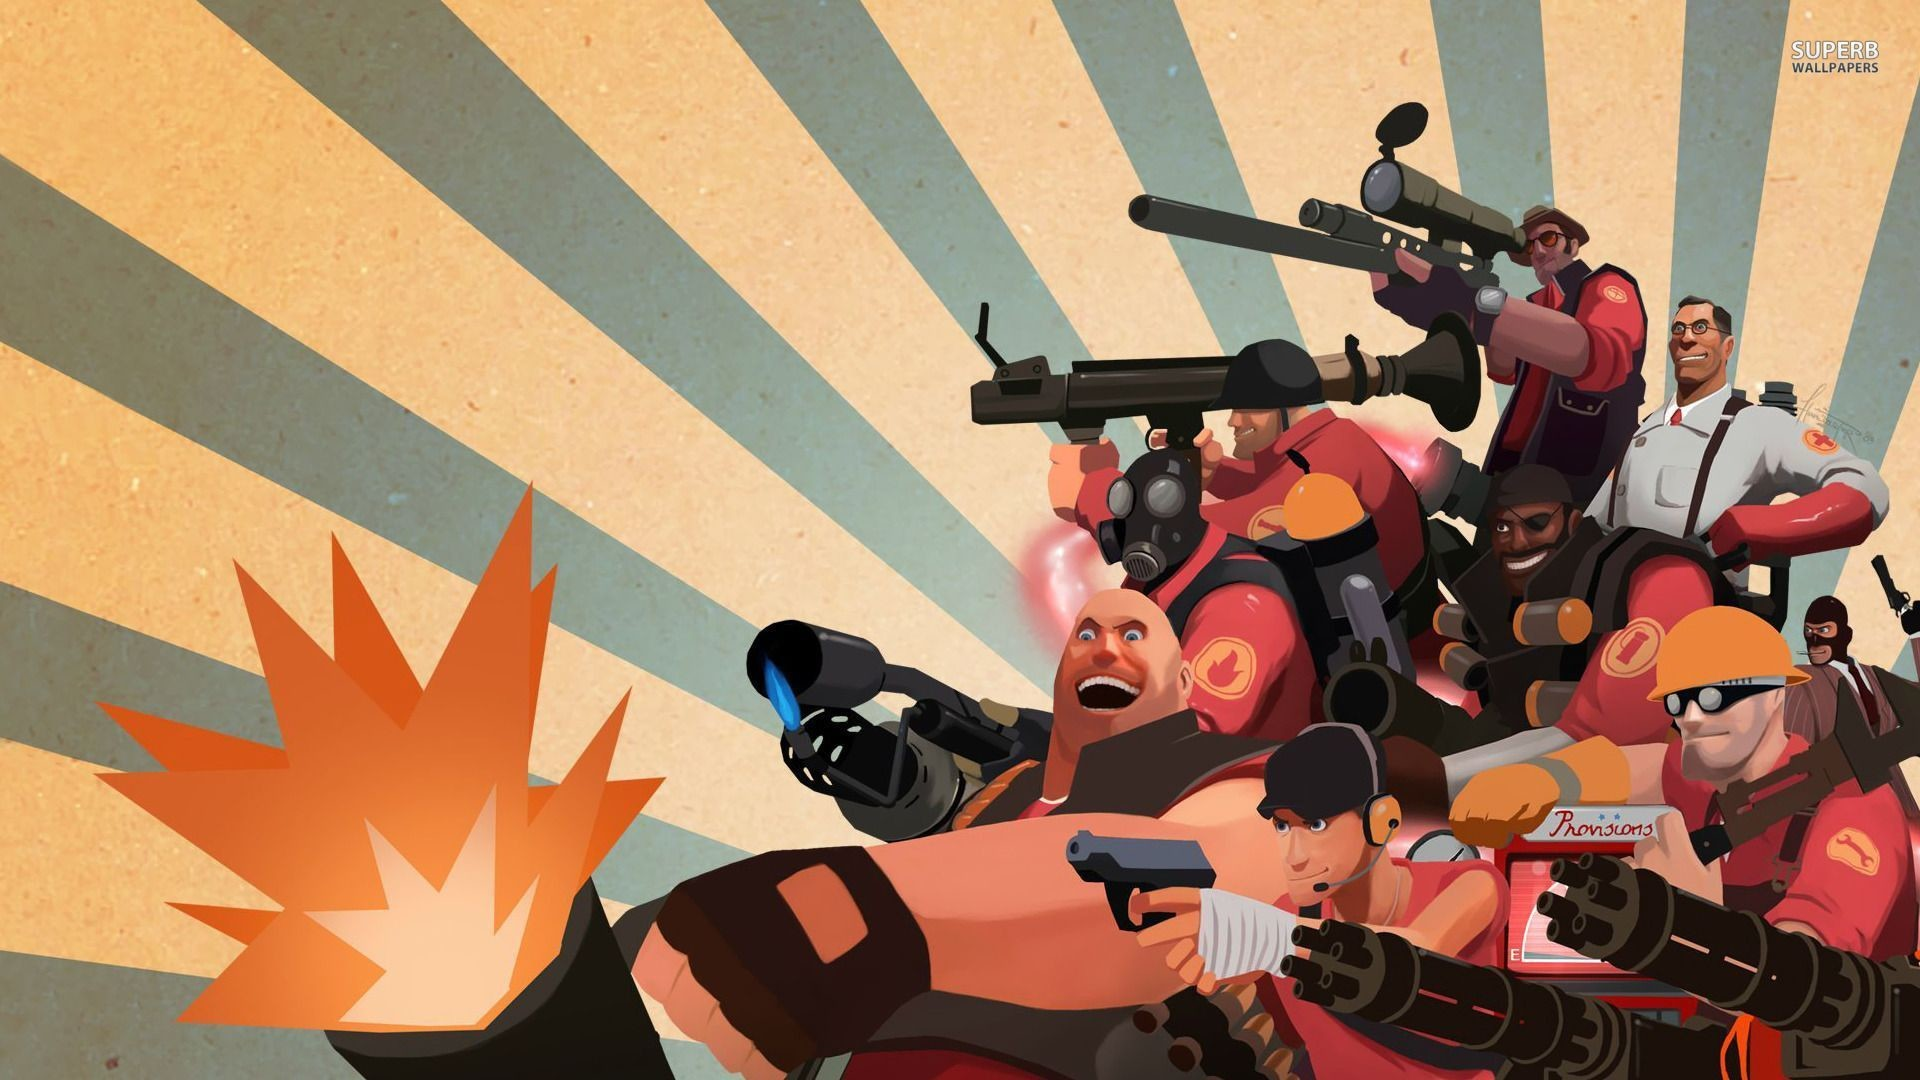 Team Fortress 2 Wallpapers High Quality